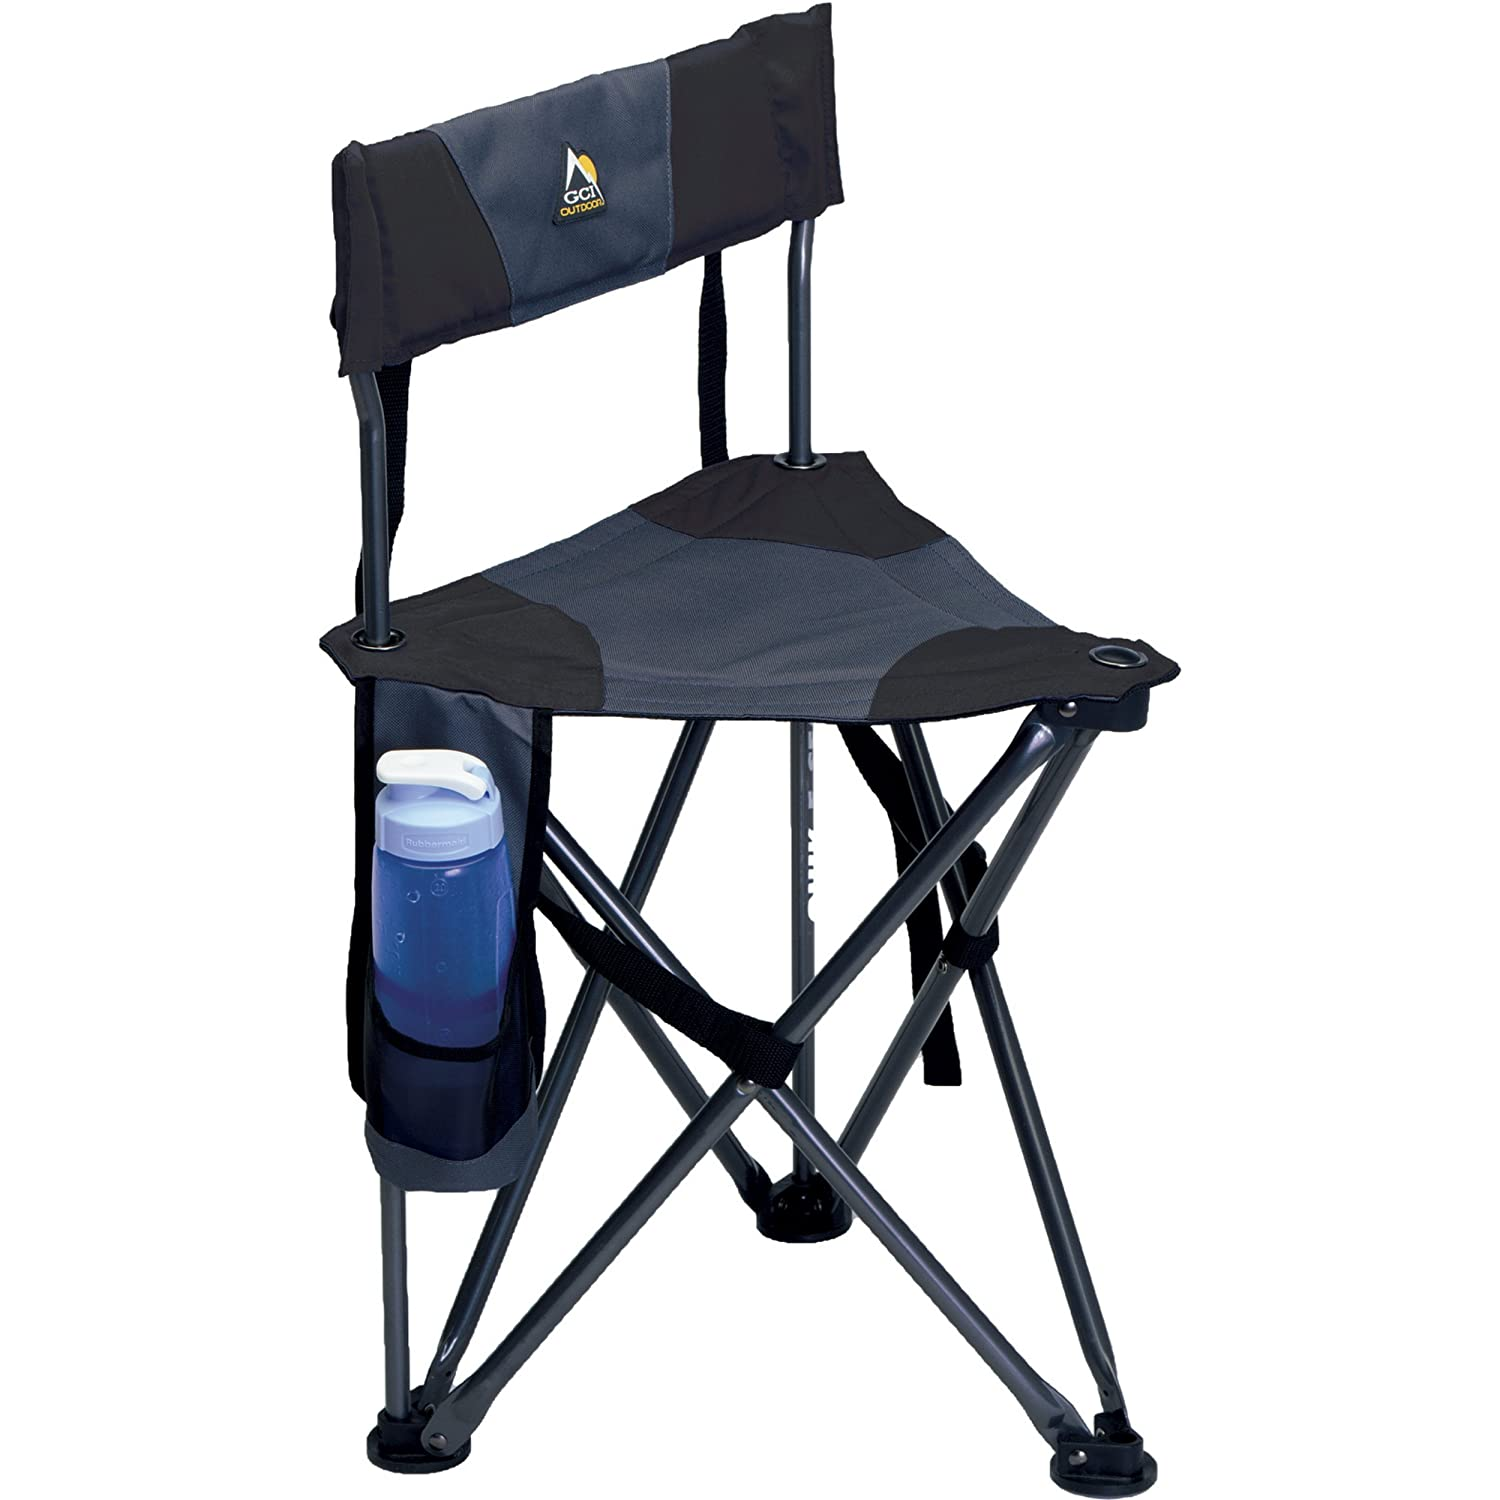 GCI Outdoor Quick-E-Seat Folding Tripod Field Chair with Backrest  Best Hiking Stool